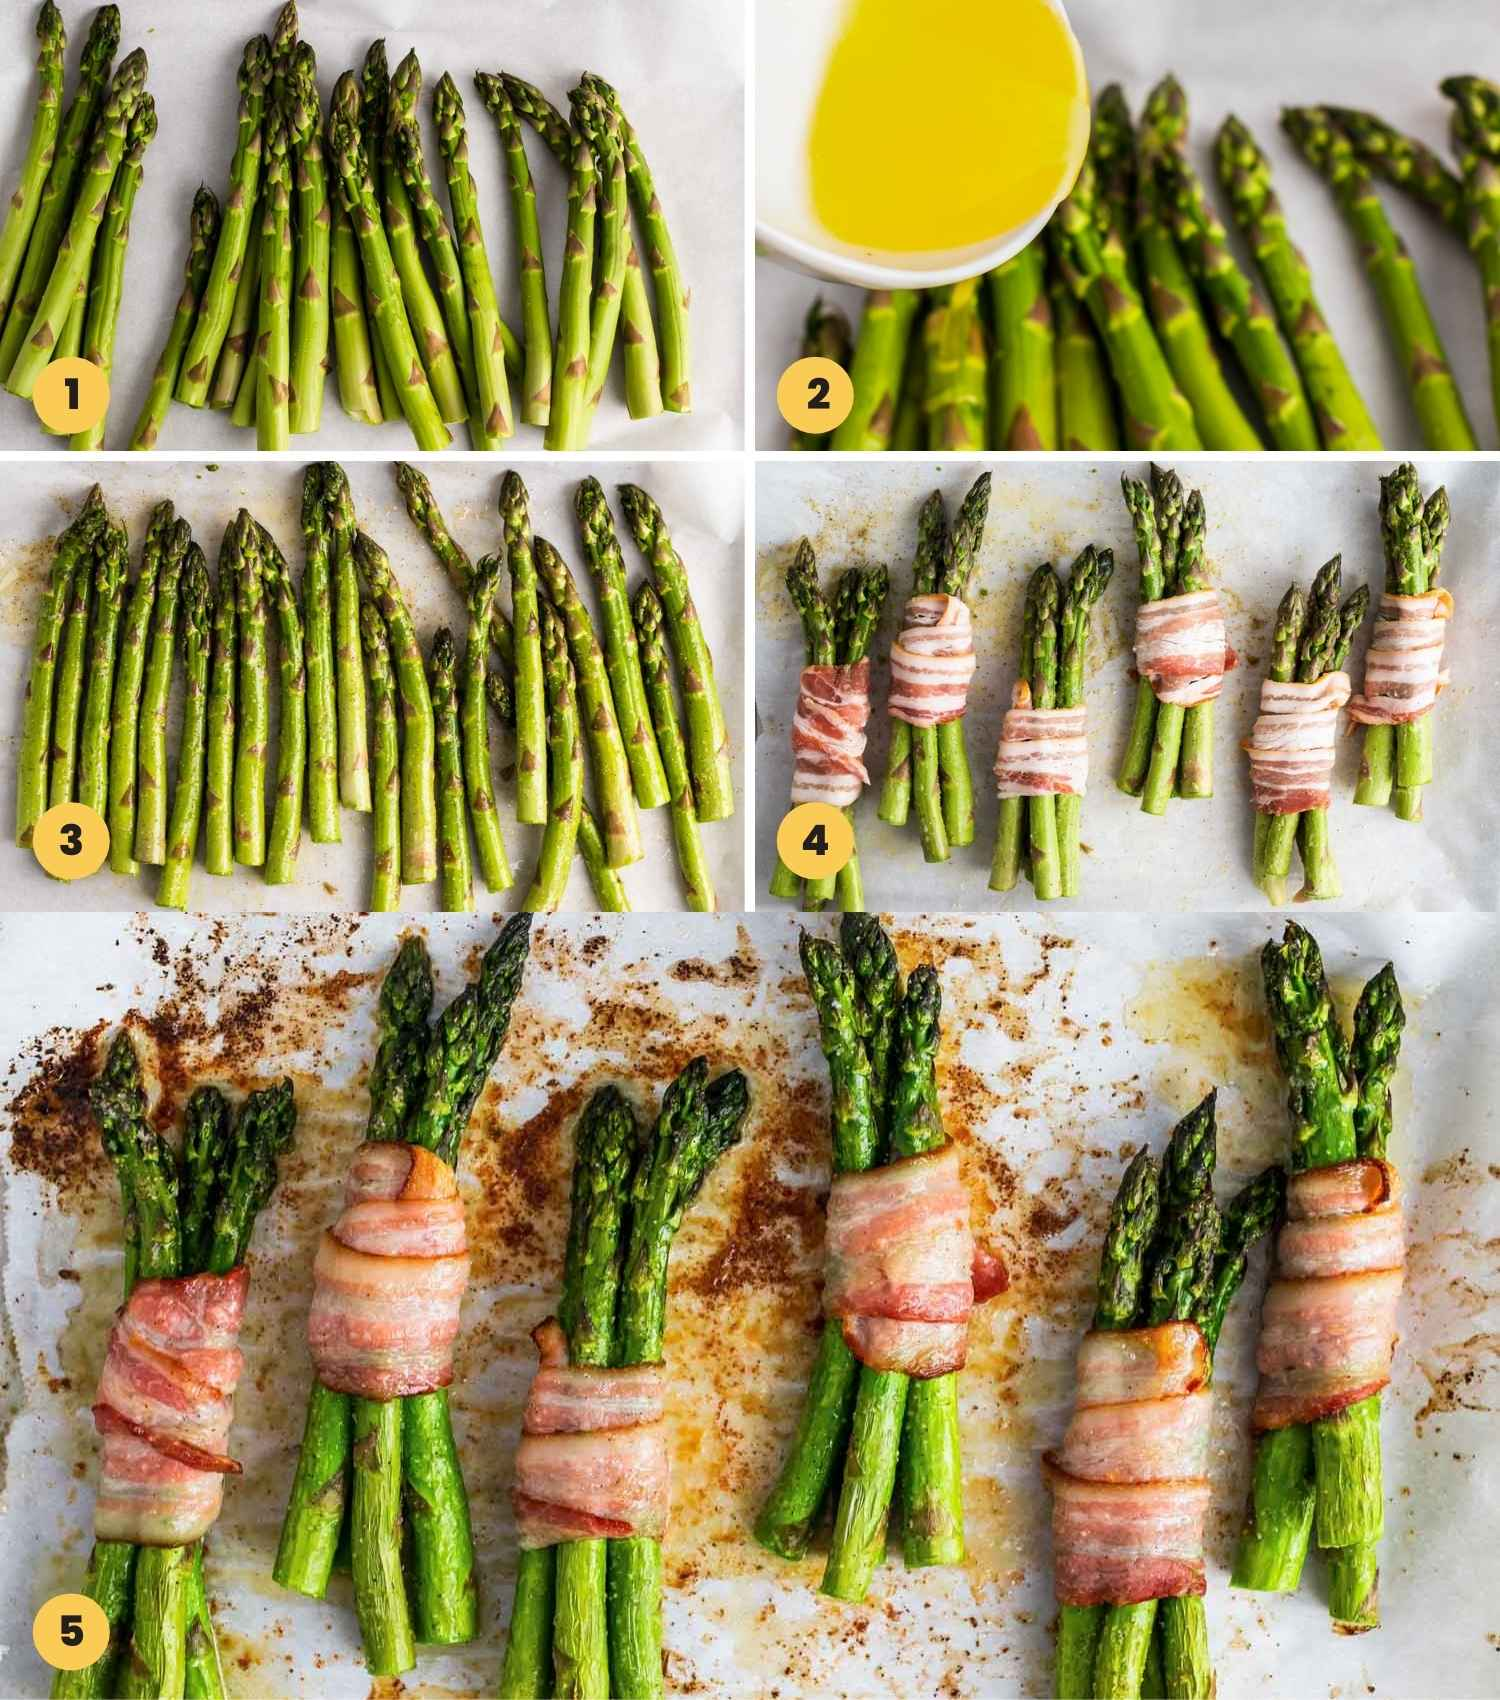 How to make Bacon Wrapped Asparagus shown in a collage of 5 images